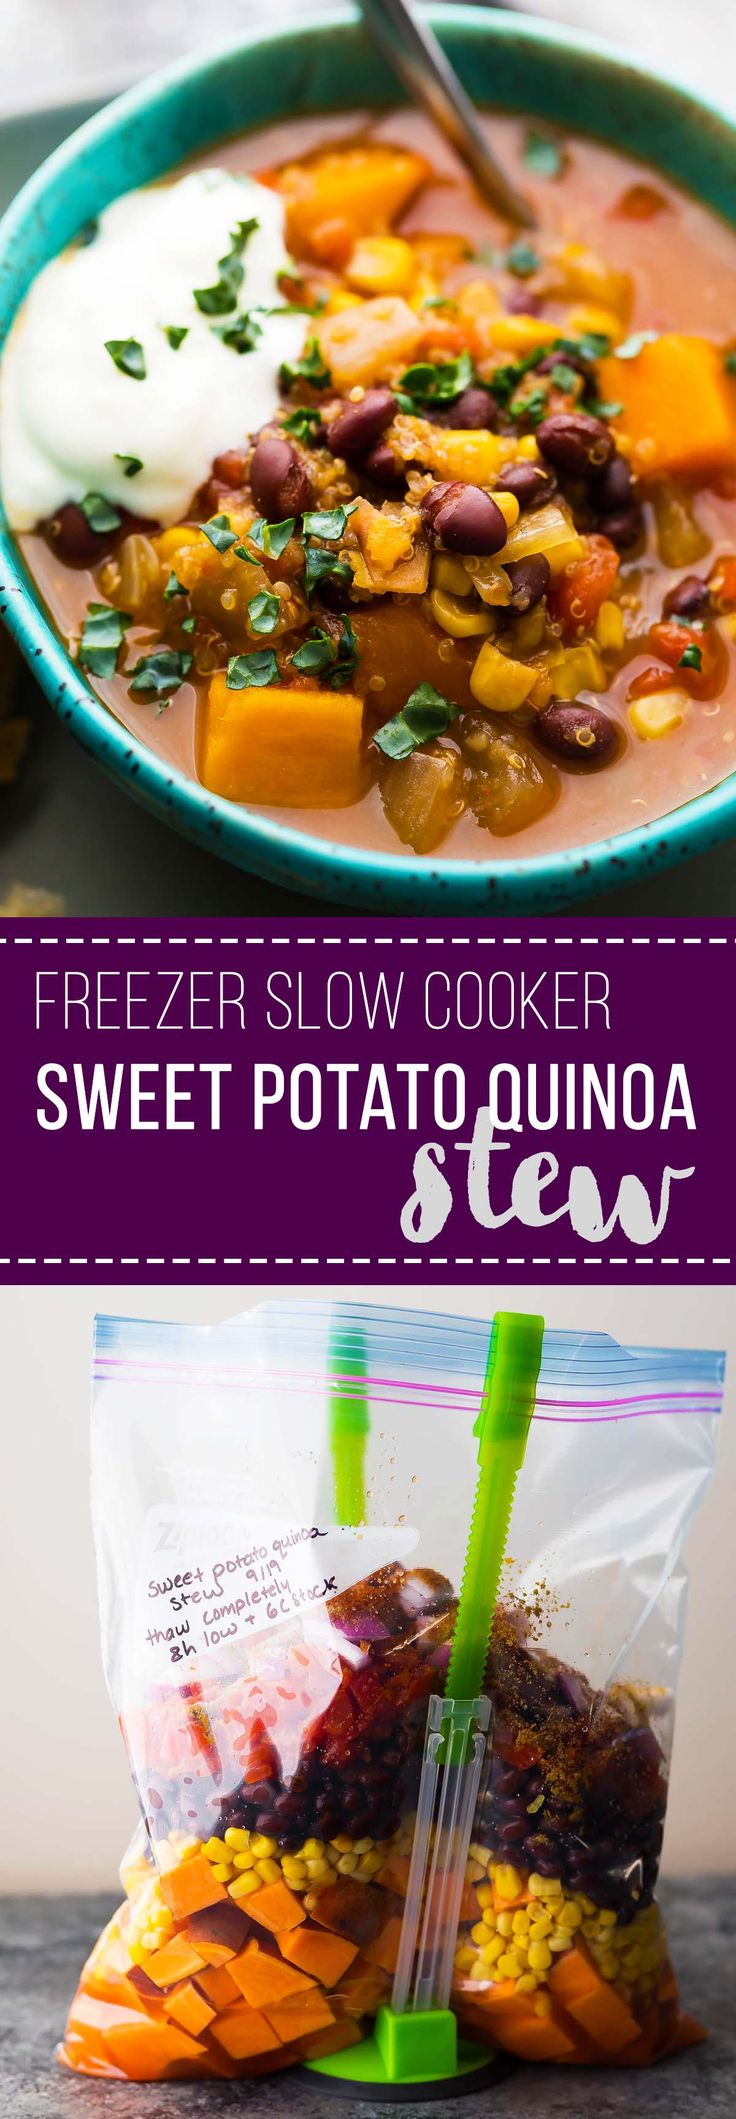 This hearty slow cooker black bean, quinoa and sweet potato stew can be assembled ahead and stashed in the freezer OR frozen after cooking it up. The perfect healthy and convenient weeknight dinner! #mealprep #slowcooker #vegan #crockpot #freezercrockpot #freezermeal #glutenfree #stews